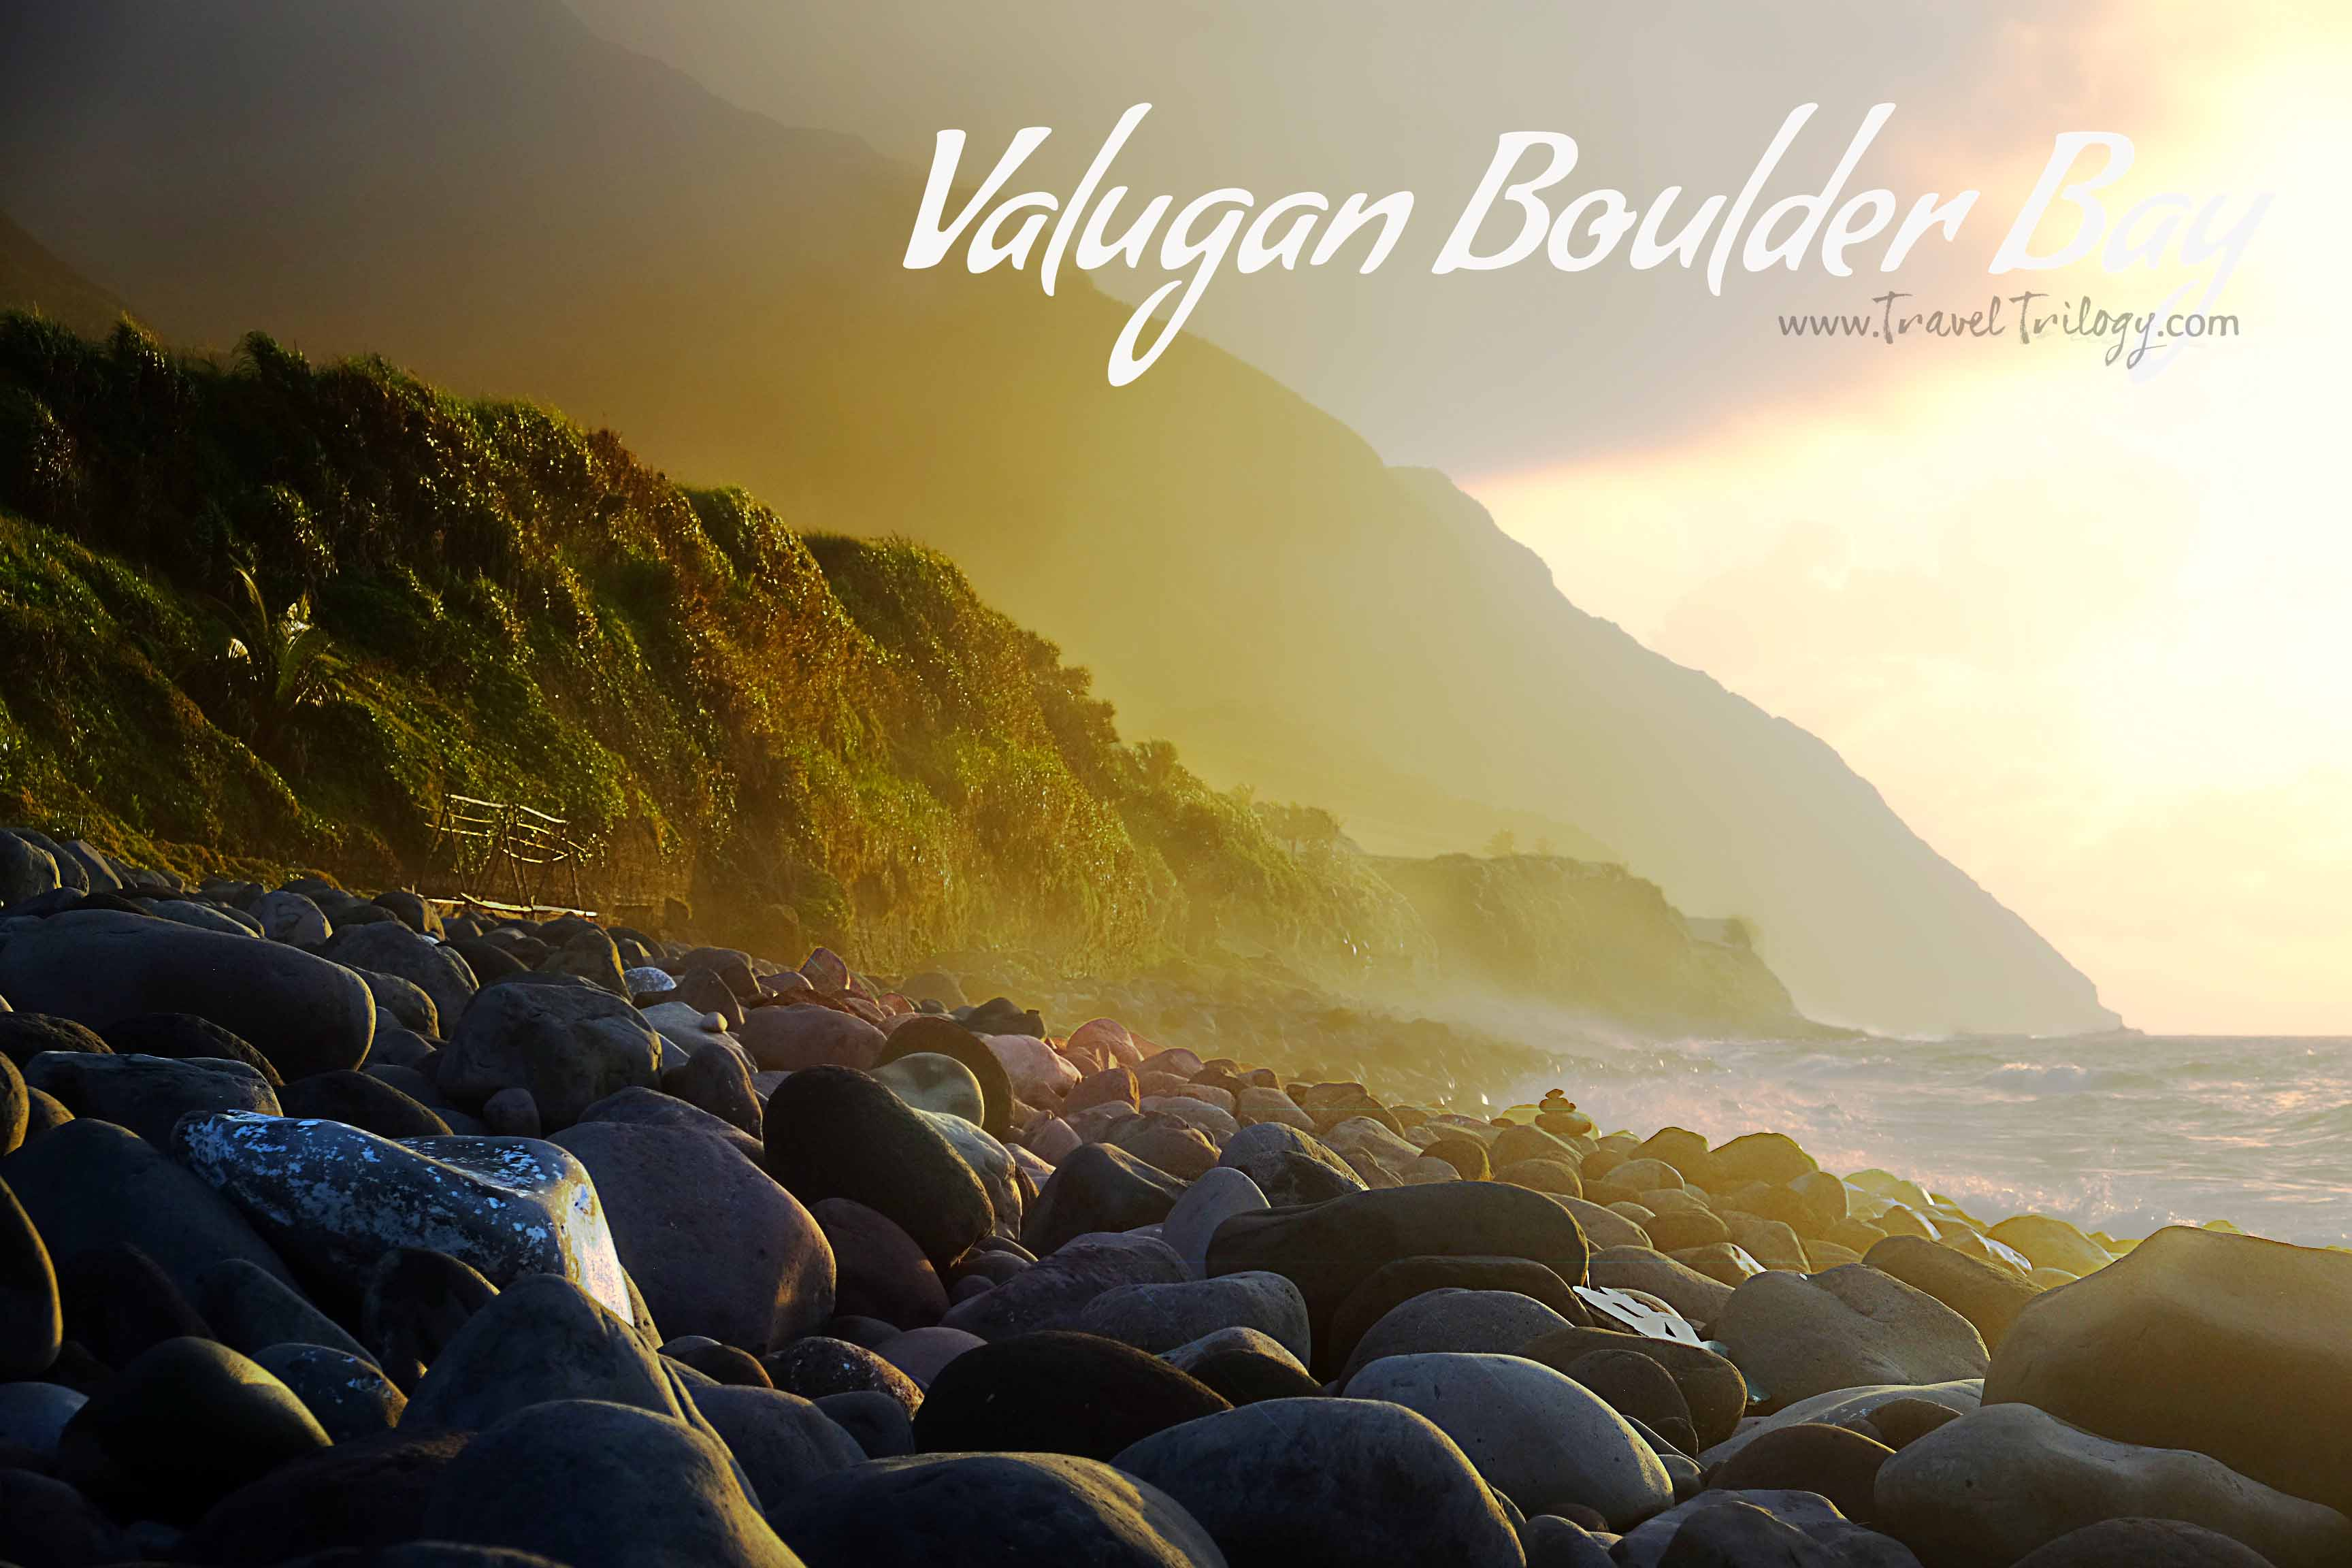 batanes valugan boulder bay